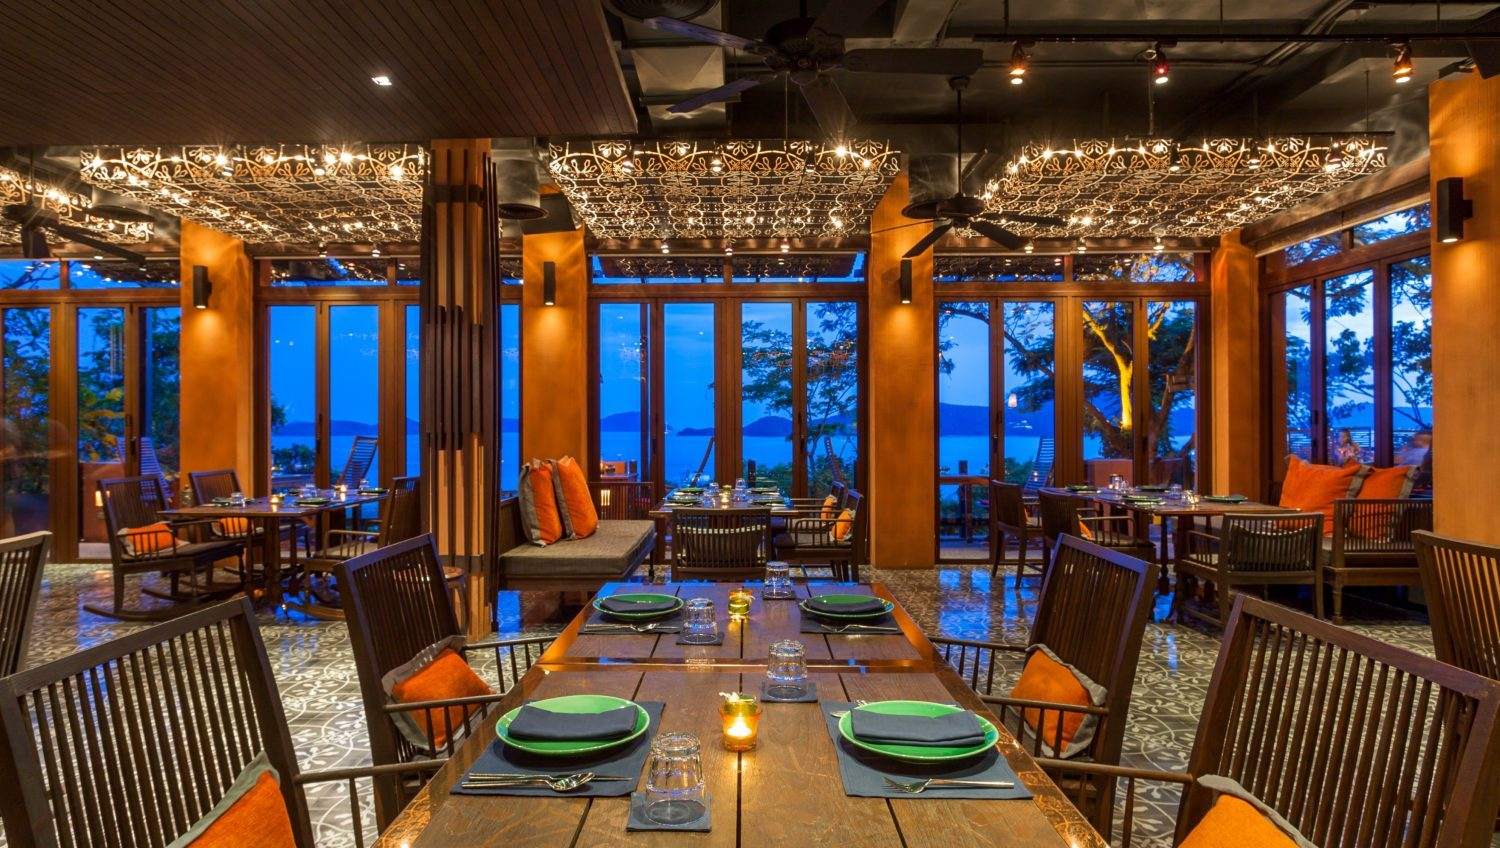 11-Baba-Soul-Food-Thai-Cuisine-Best-Restaurant-in-Phuket